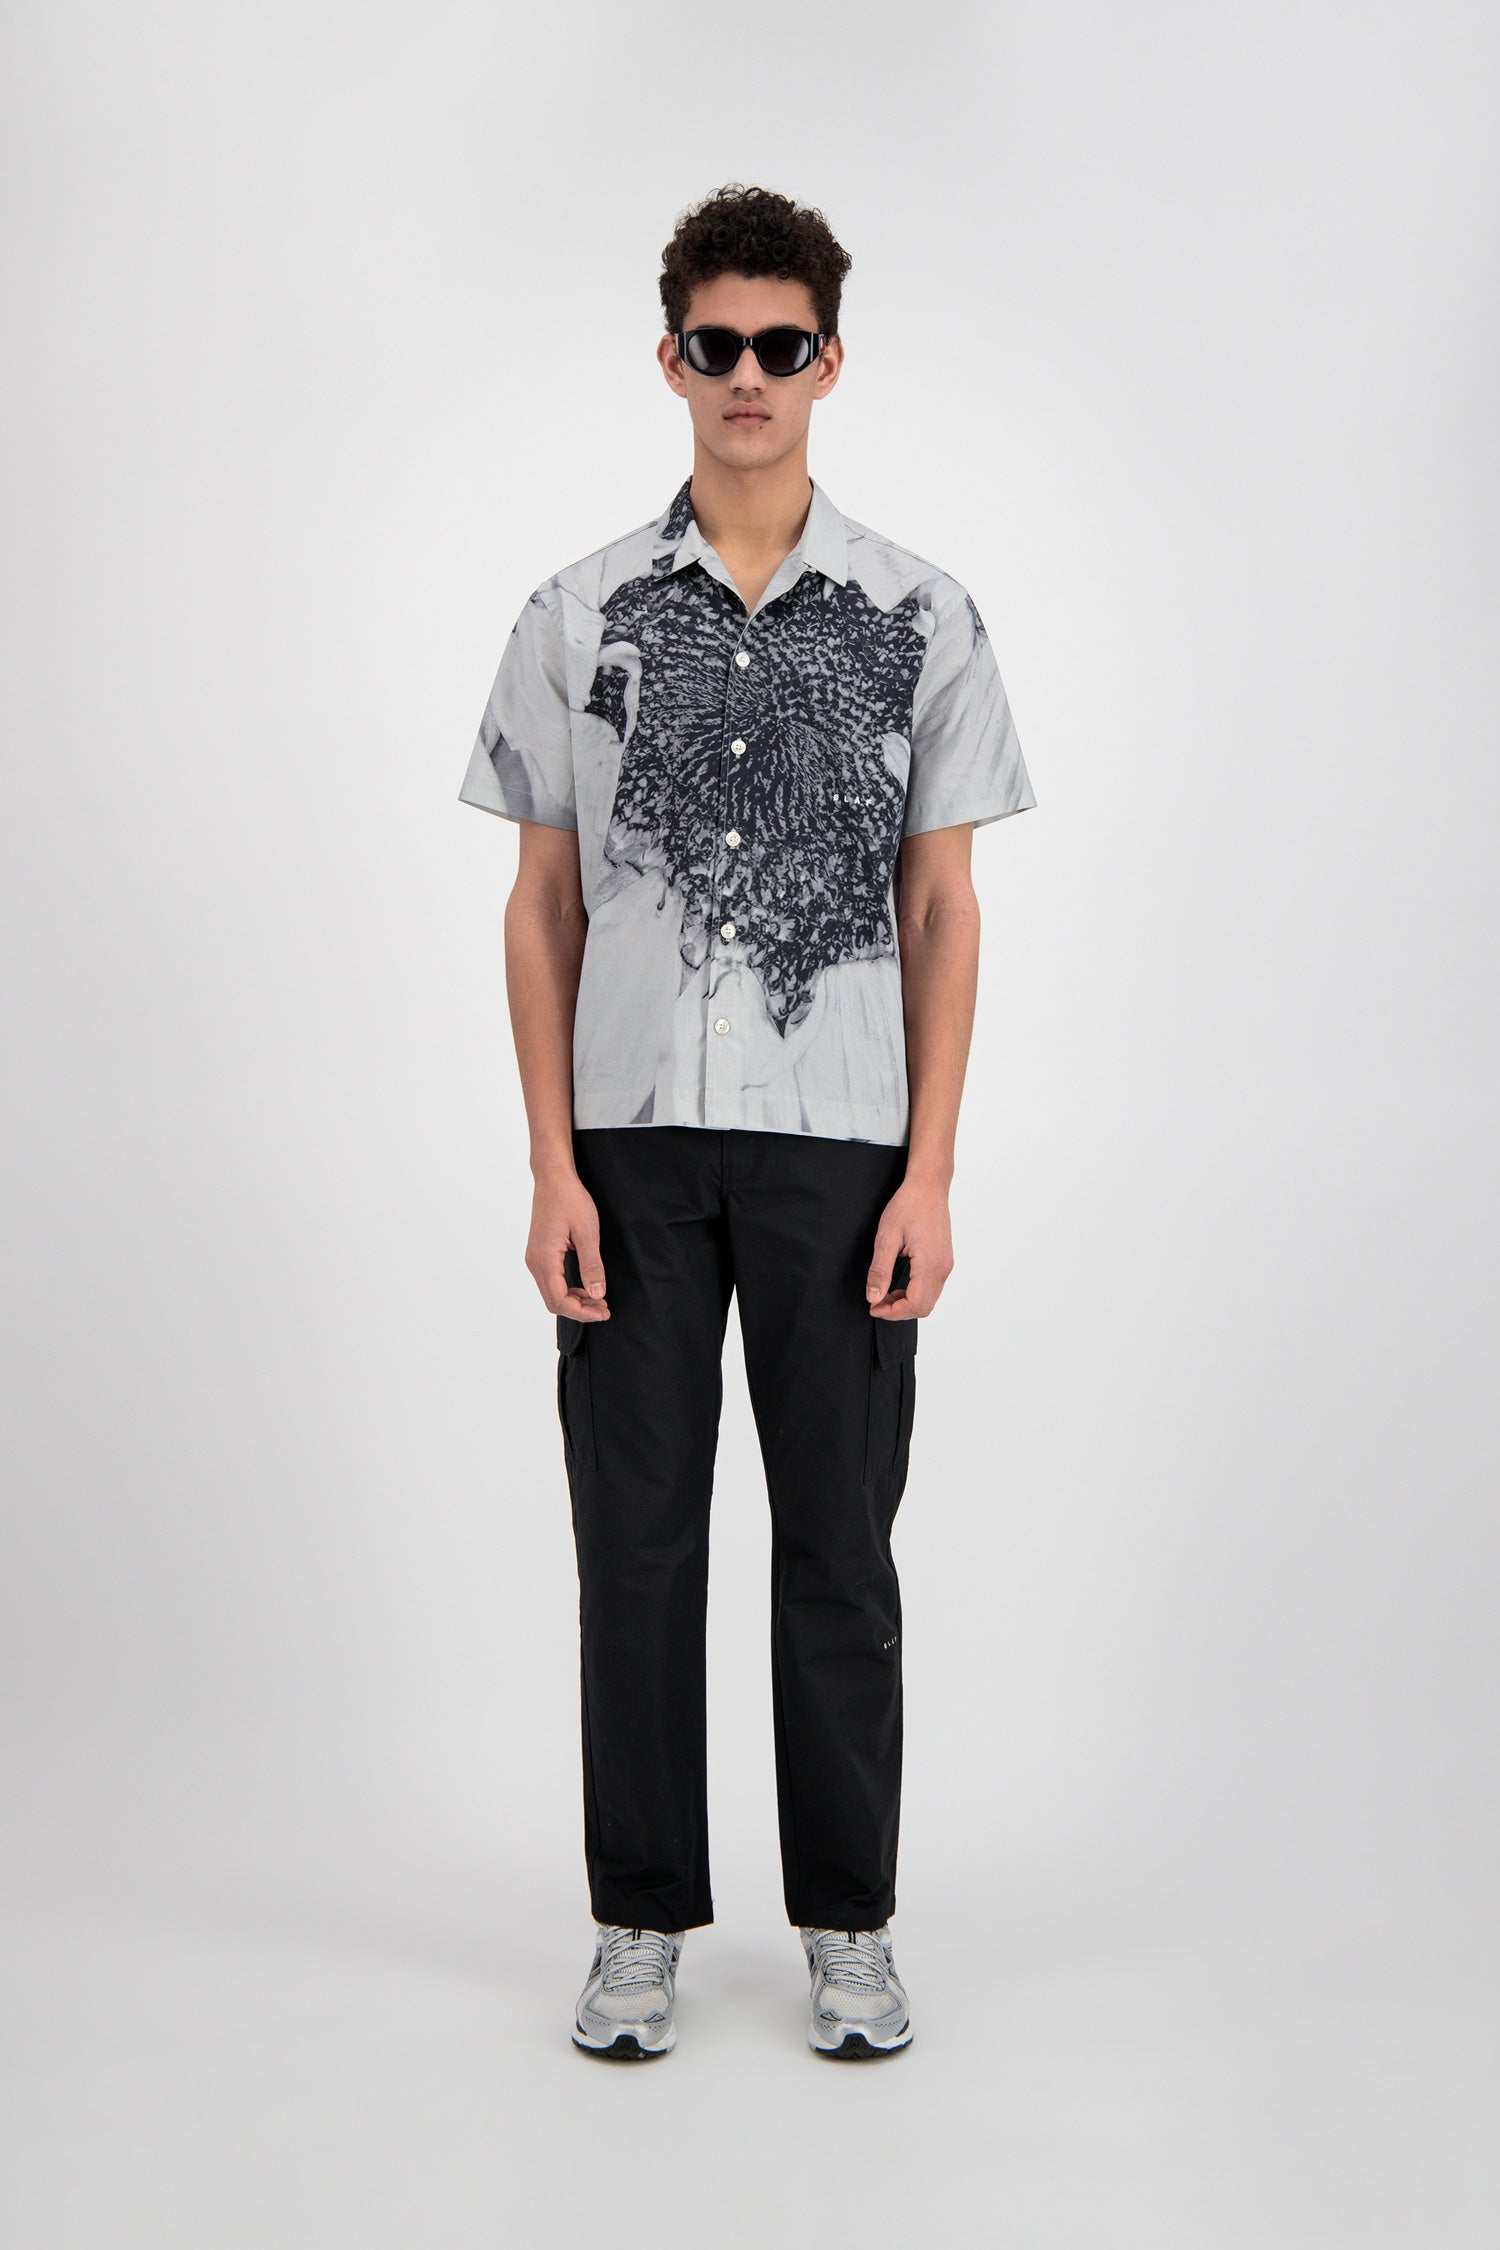 ØLÅF Overshirt SS <br>Digital Print